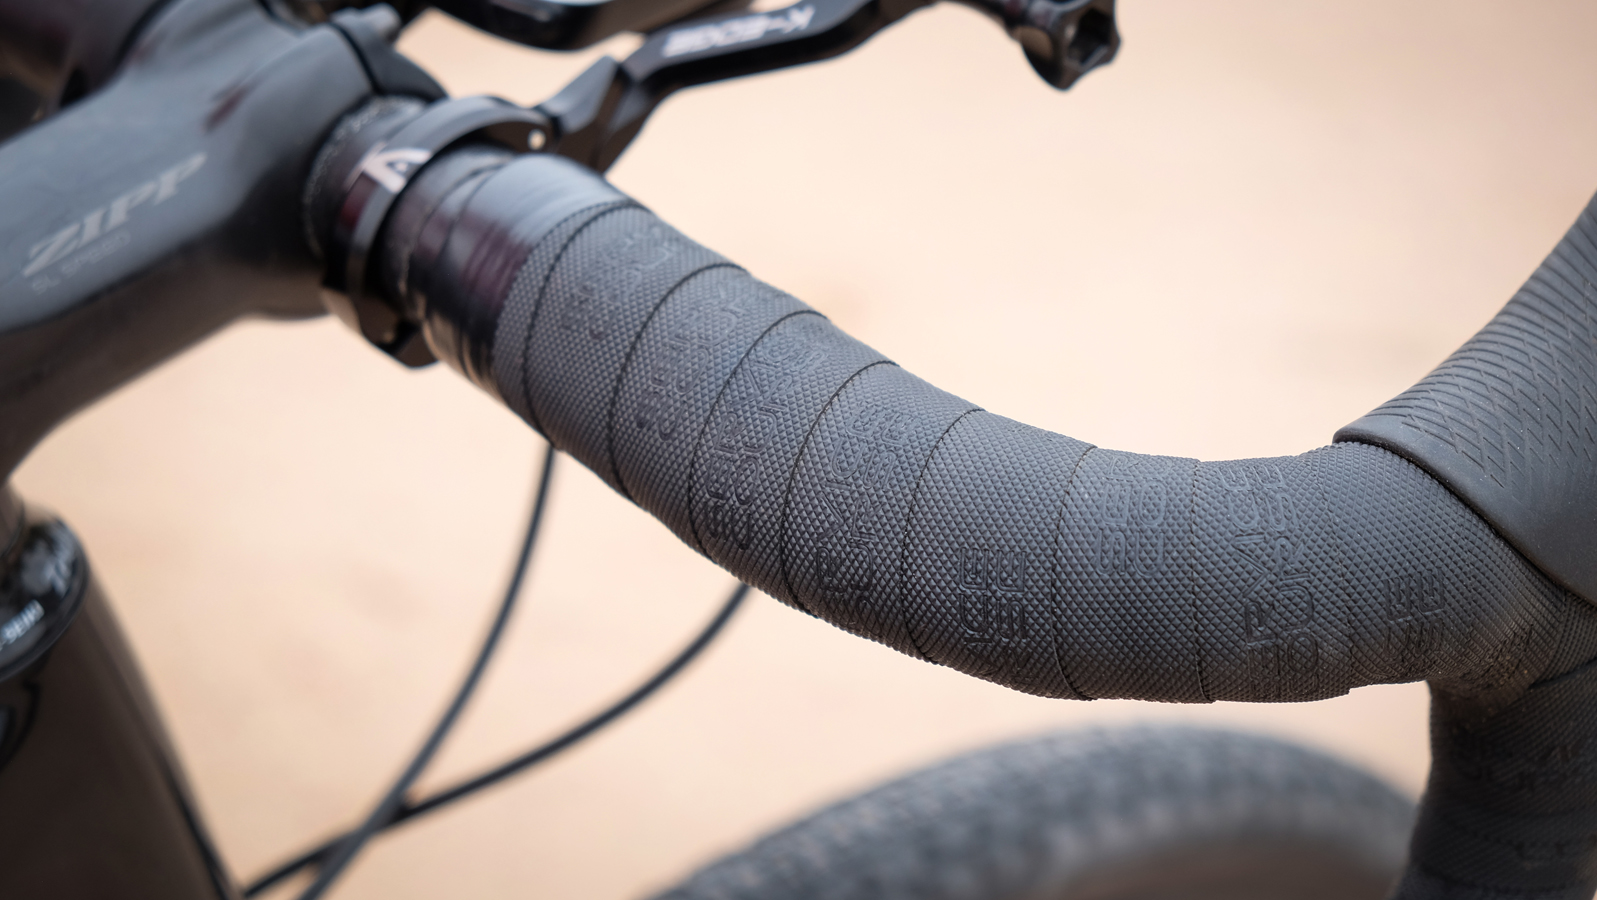 Thick handlebar tape with gel underneath takes the edge off rough gravel roads.